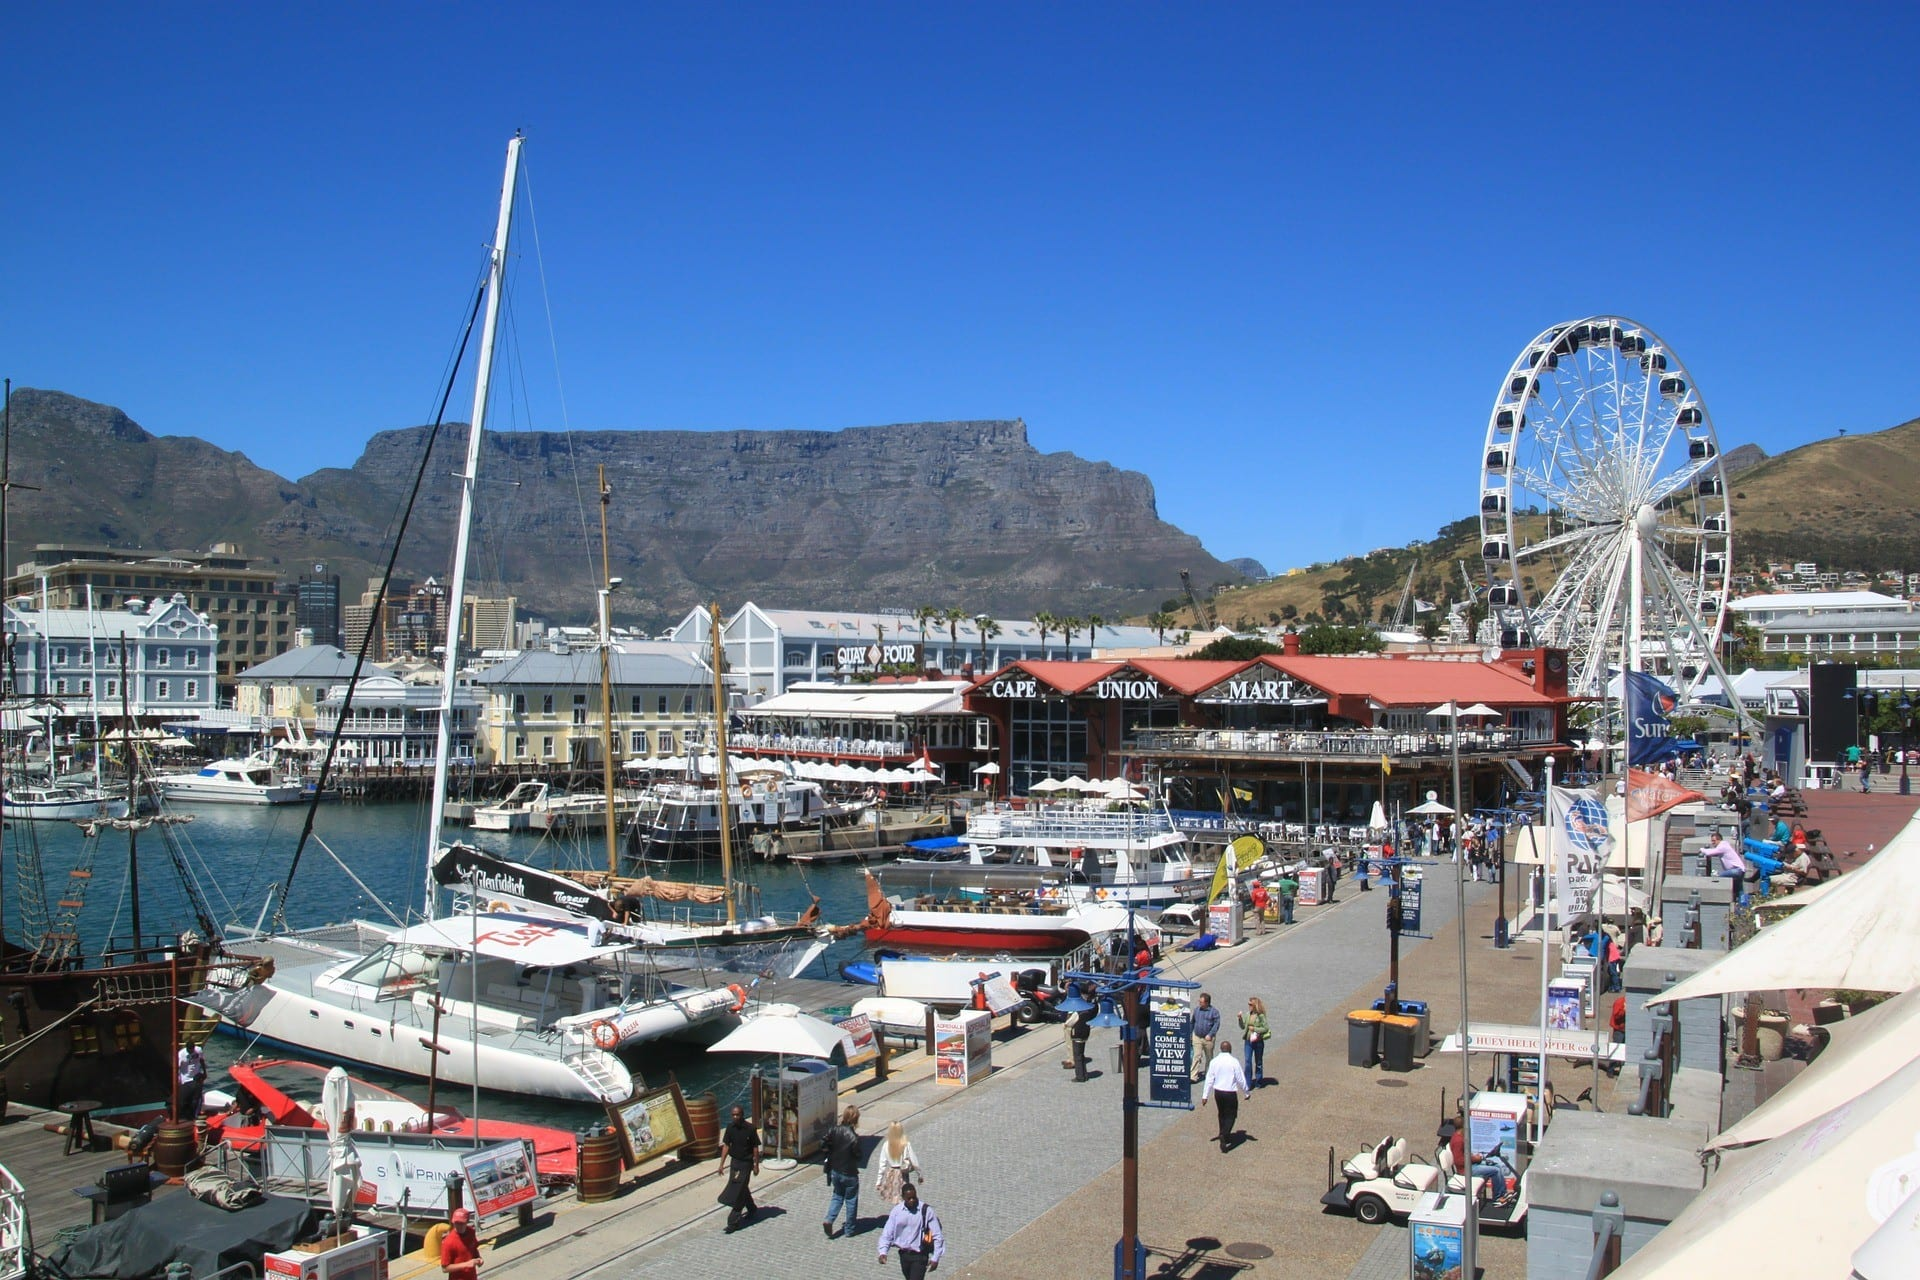 THINGS TO DO IN CAPE TOWN IN NOVEMBER